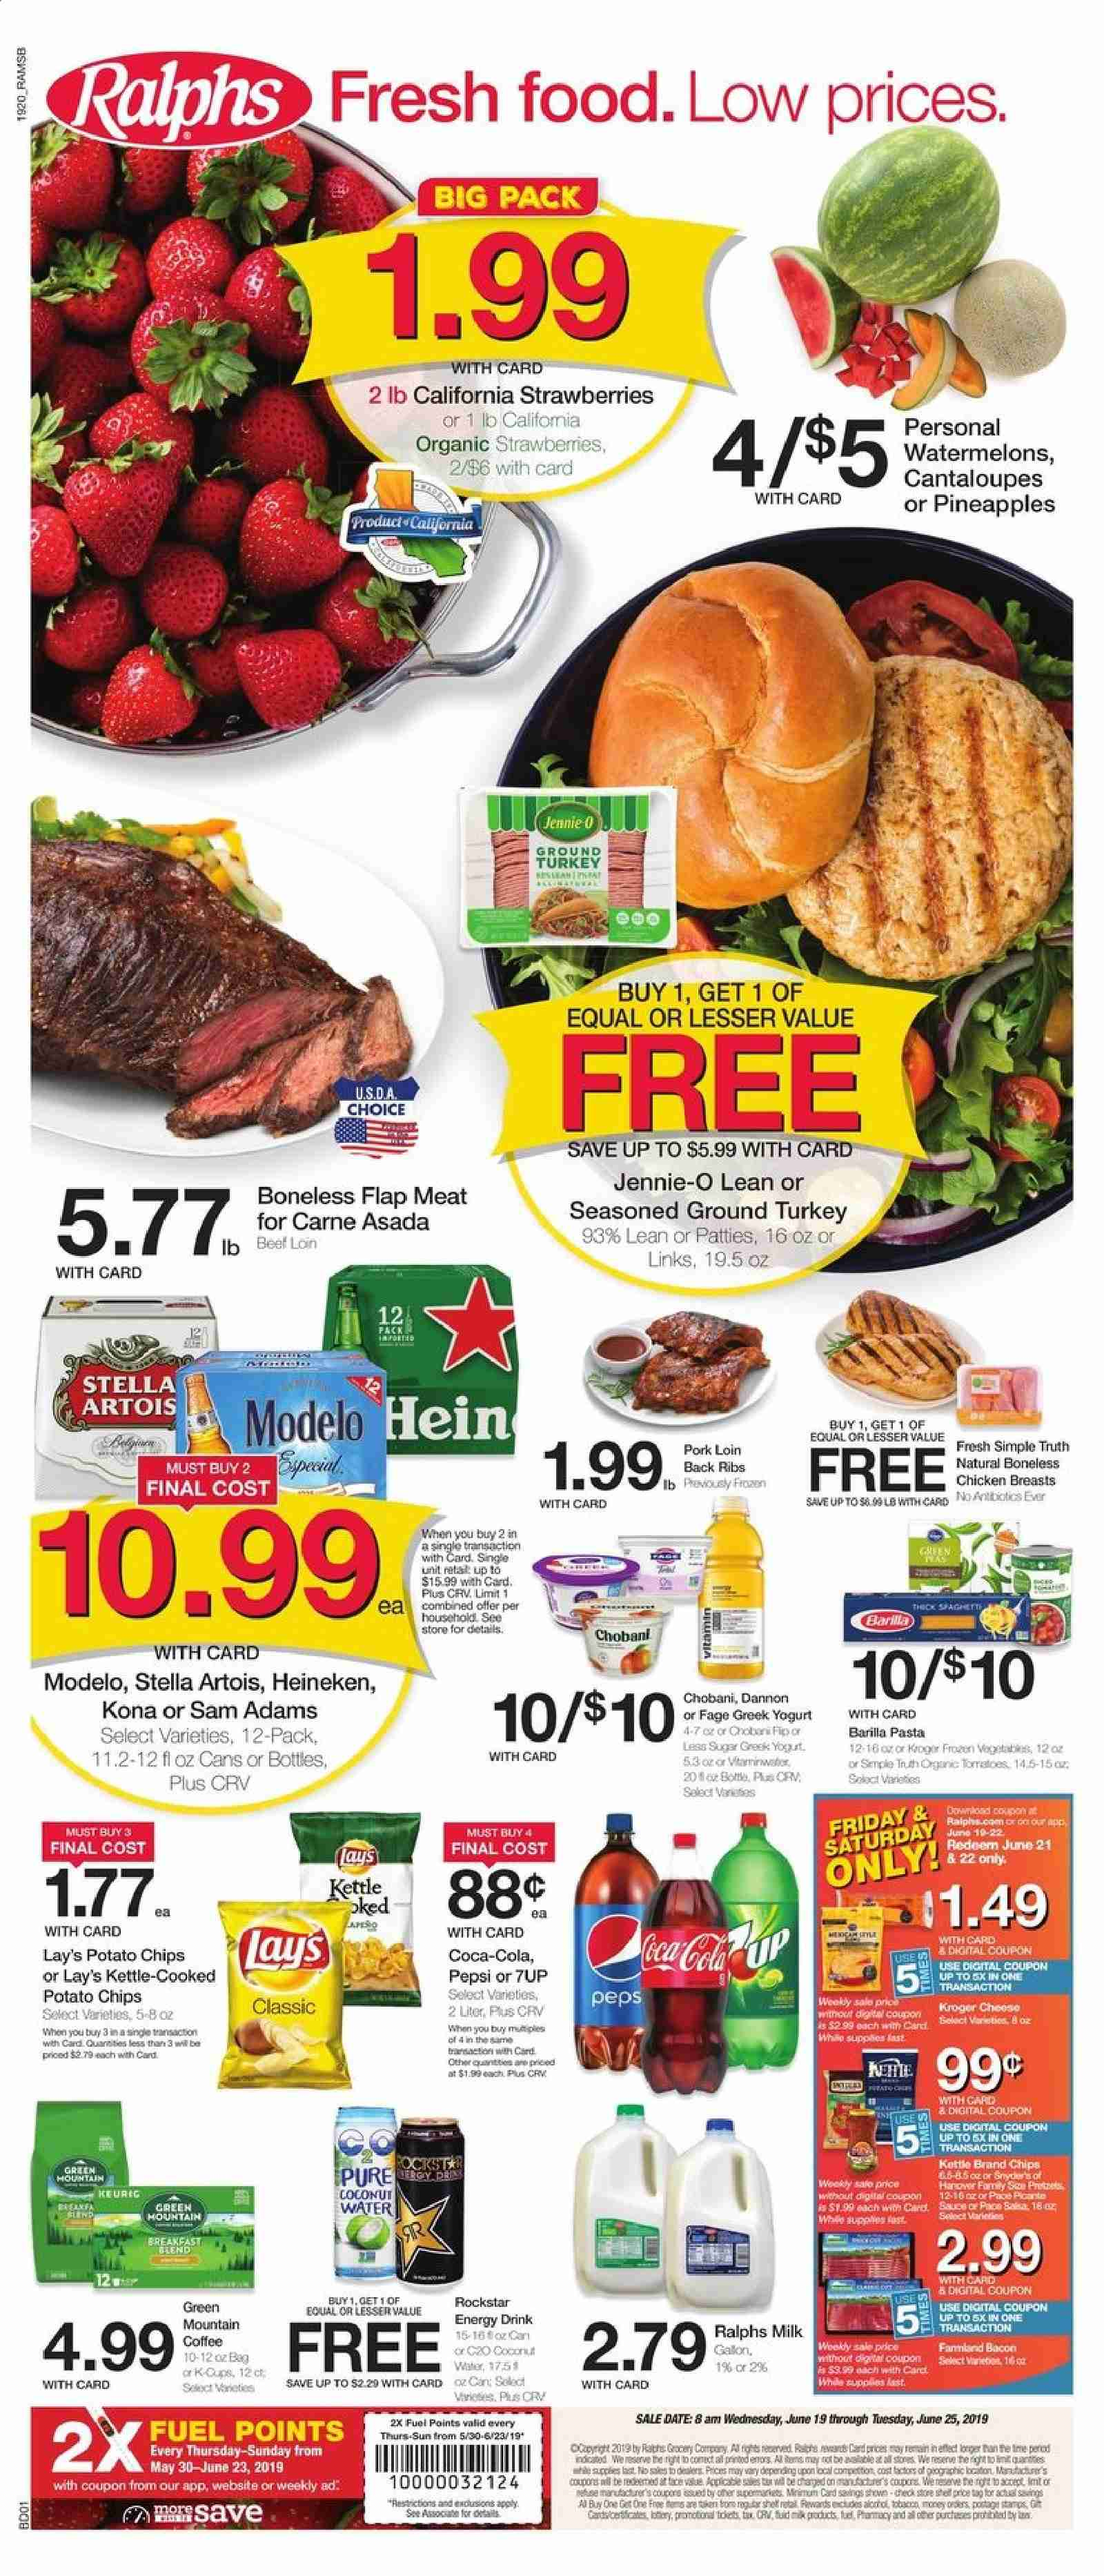 Ralphs Flyer  - 06.19.2019 - 06.25.2019. Page 1.